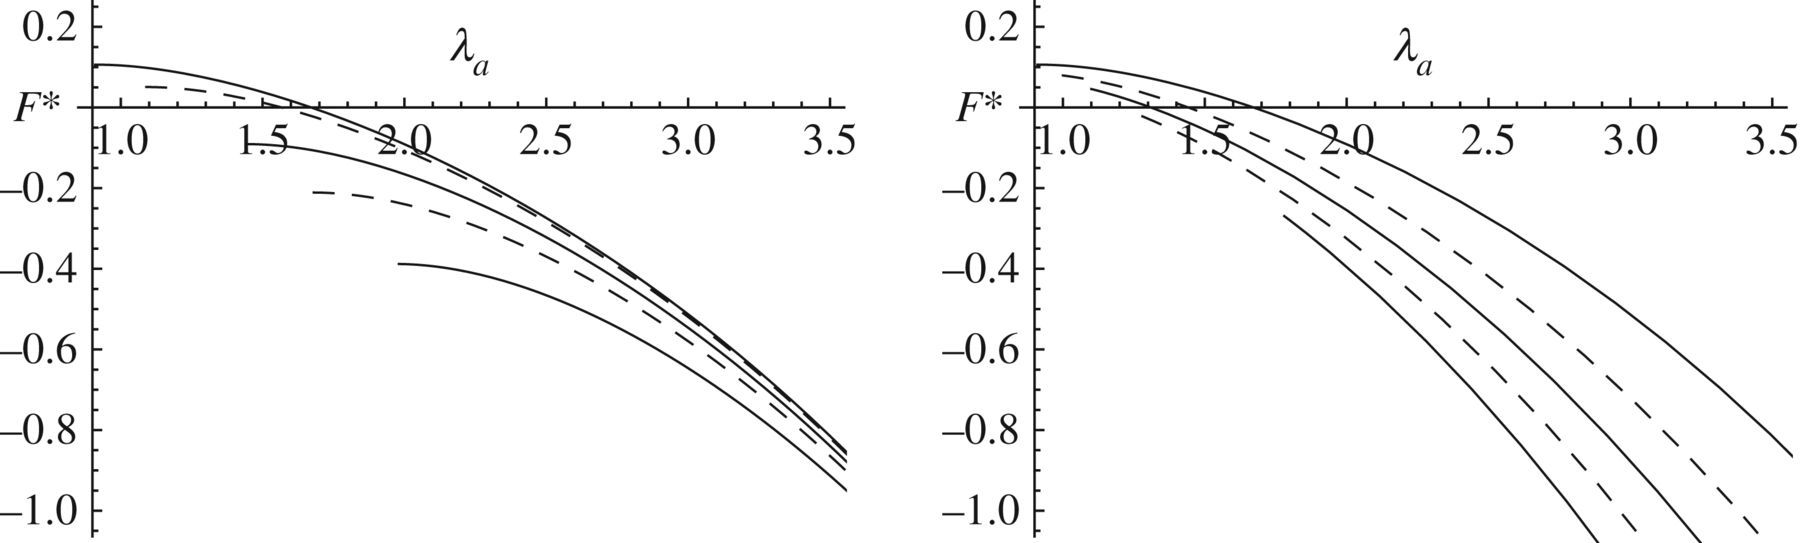 Nonlinear electroelasticity: material properties, continuum